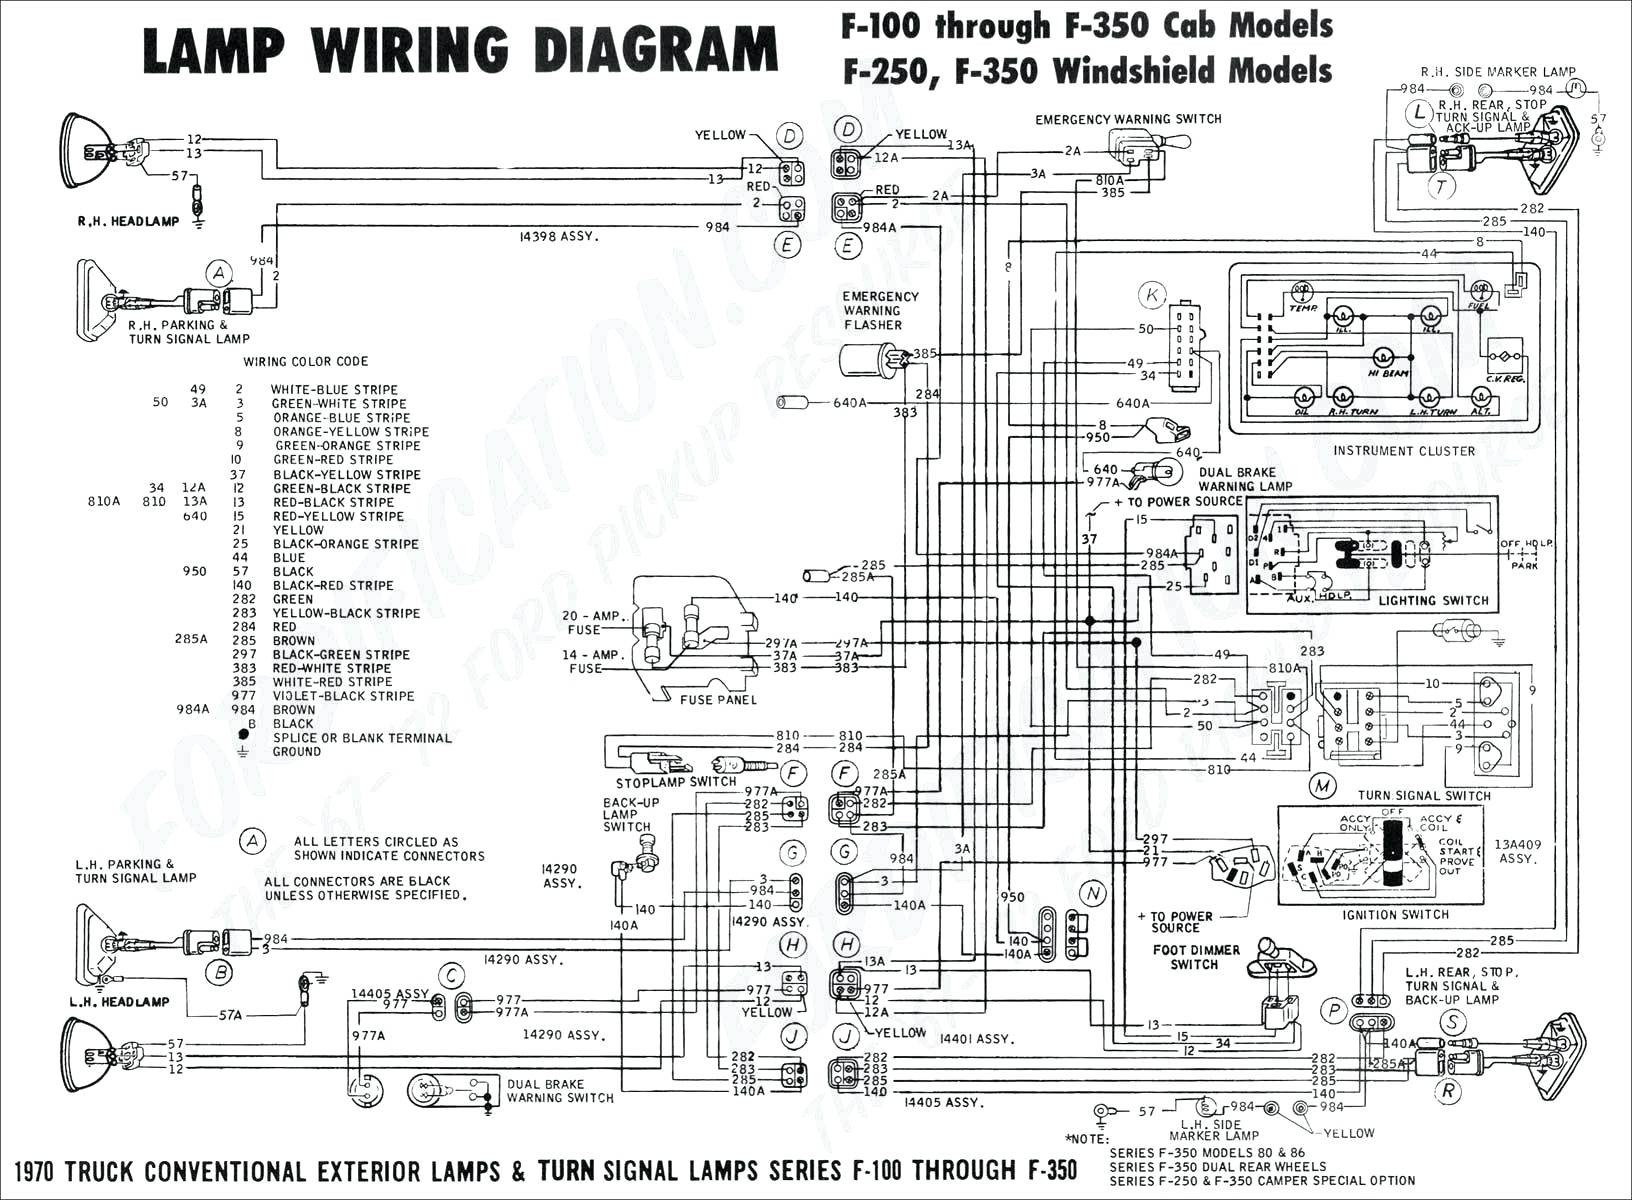 2001 ford f550 wiring diagram box wiring diagram 2011 ford f150 wiring diagram 2011 ford f550 wiring diagram #1